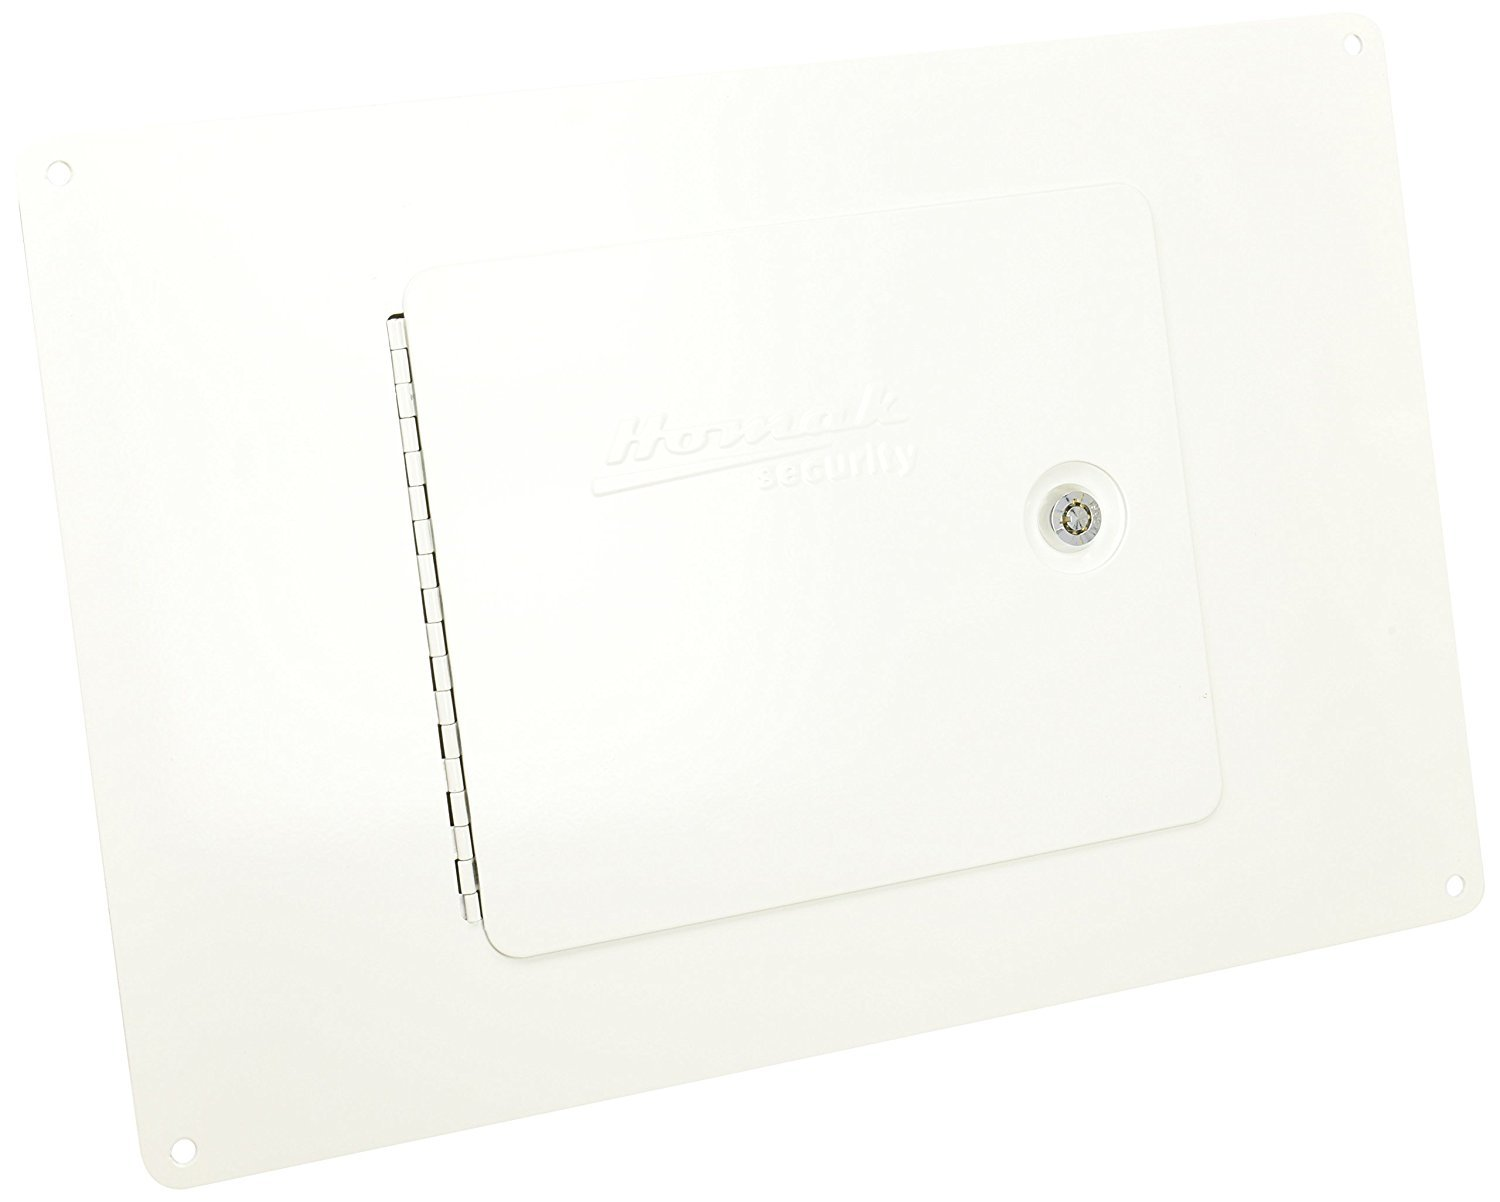 First Watch - Homak Between the Studs High Security Steel Wall Safe, White, WS00017001 by HMC Holdings LLC - First Watch